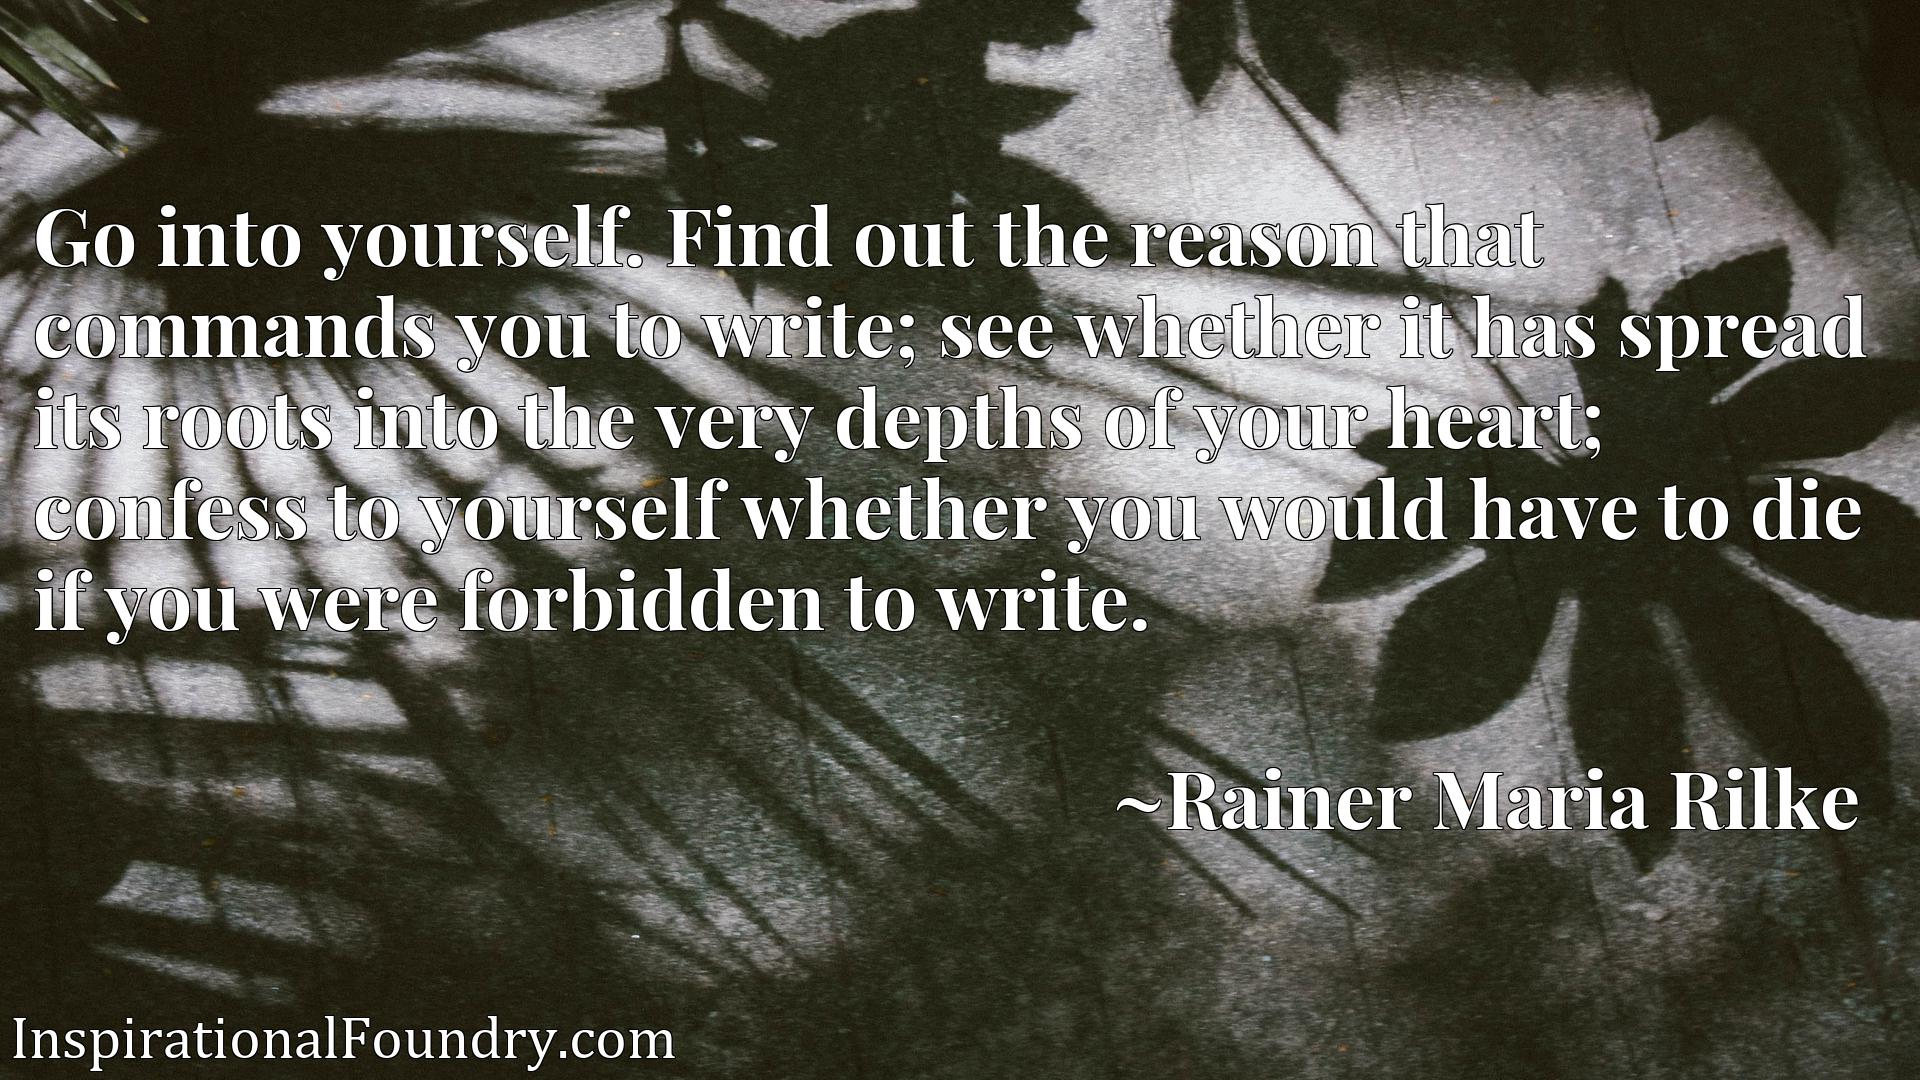 Go into yourself. Find out the reason that commands you to write; see whether it has spread its roots into the very depths of your heart; confess to yourself whether you would have to die if you were forbidden to write.